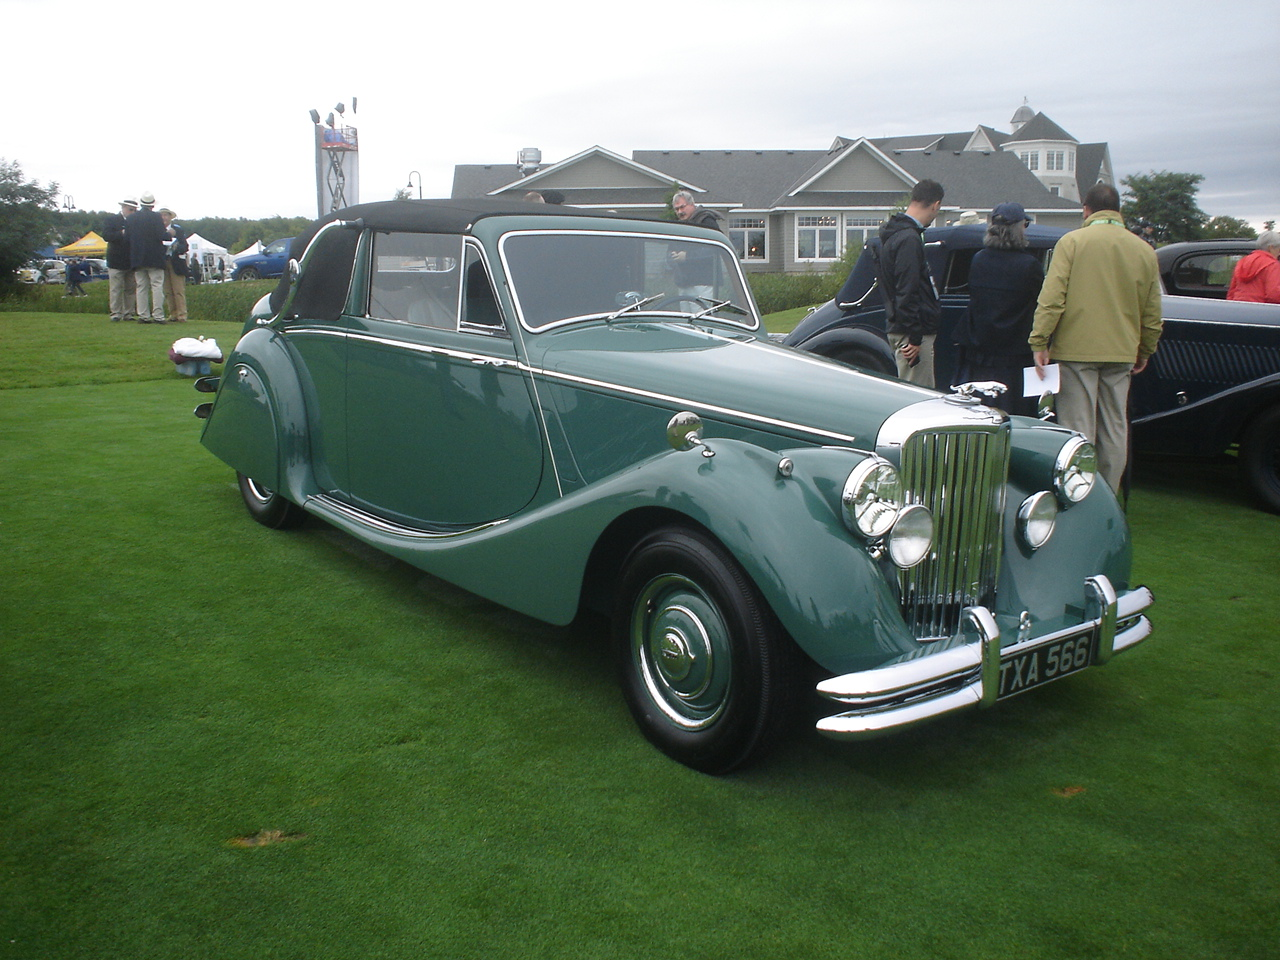 1950 Jaguar Mark V Drophead Coupe -1.JPG